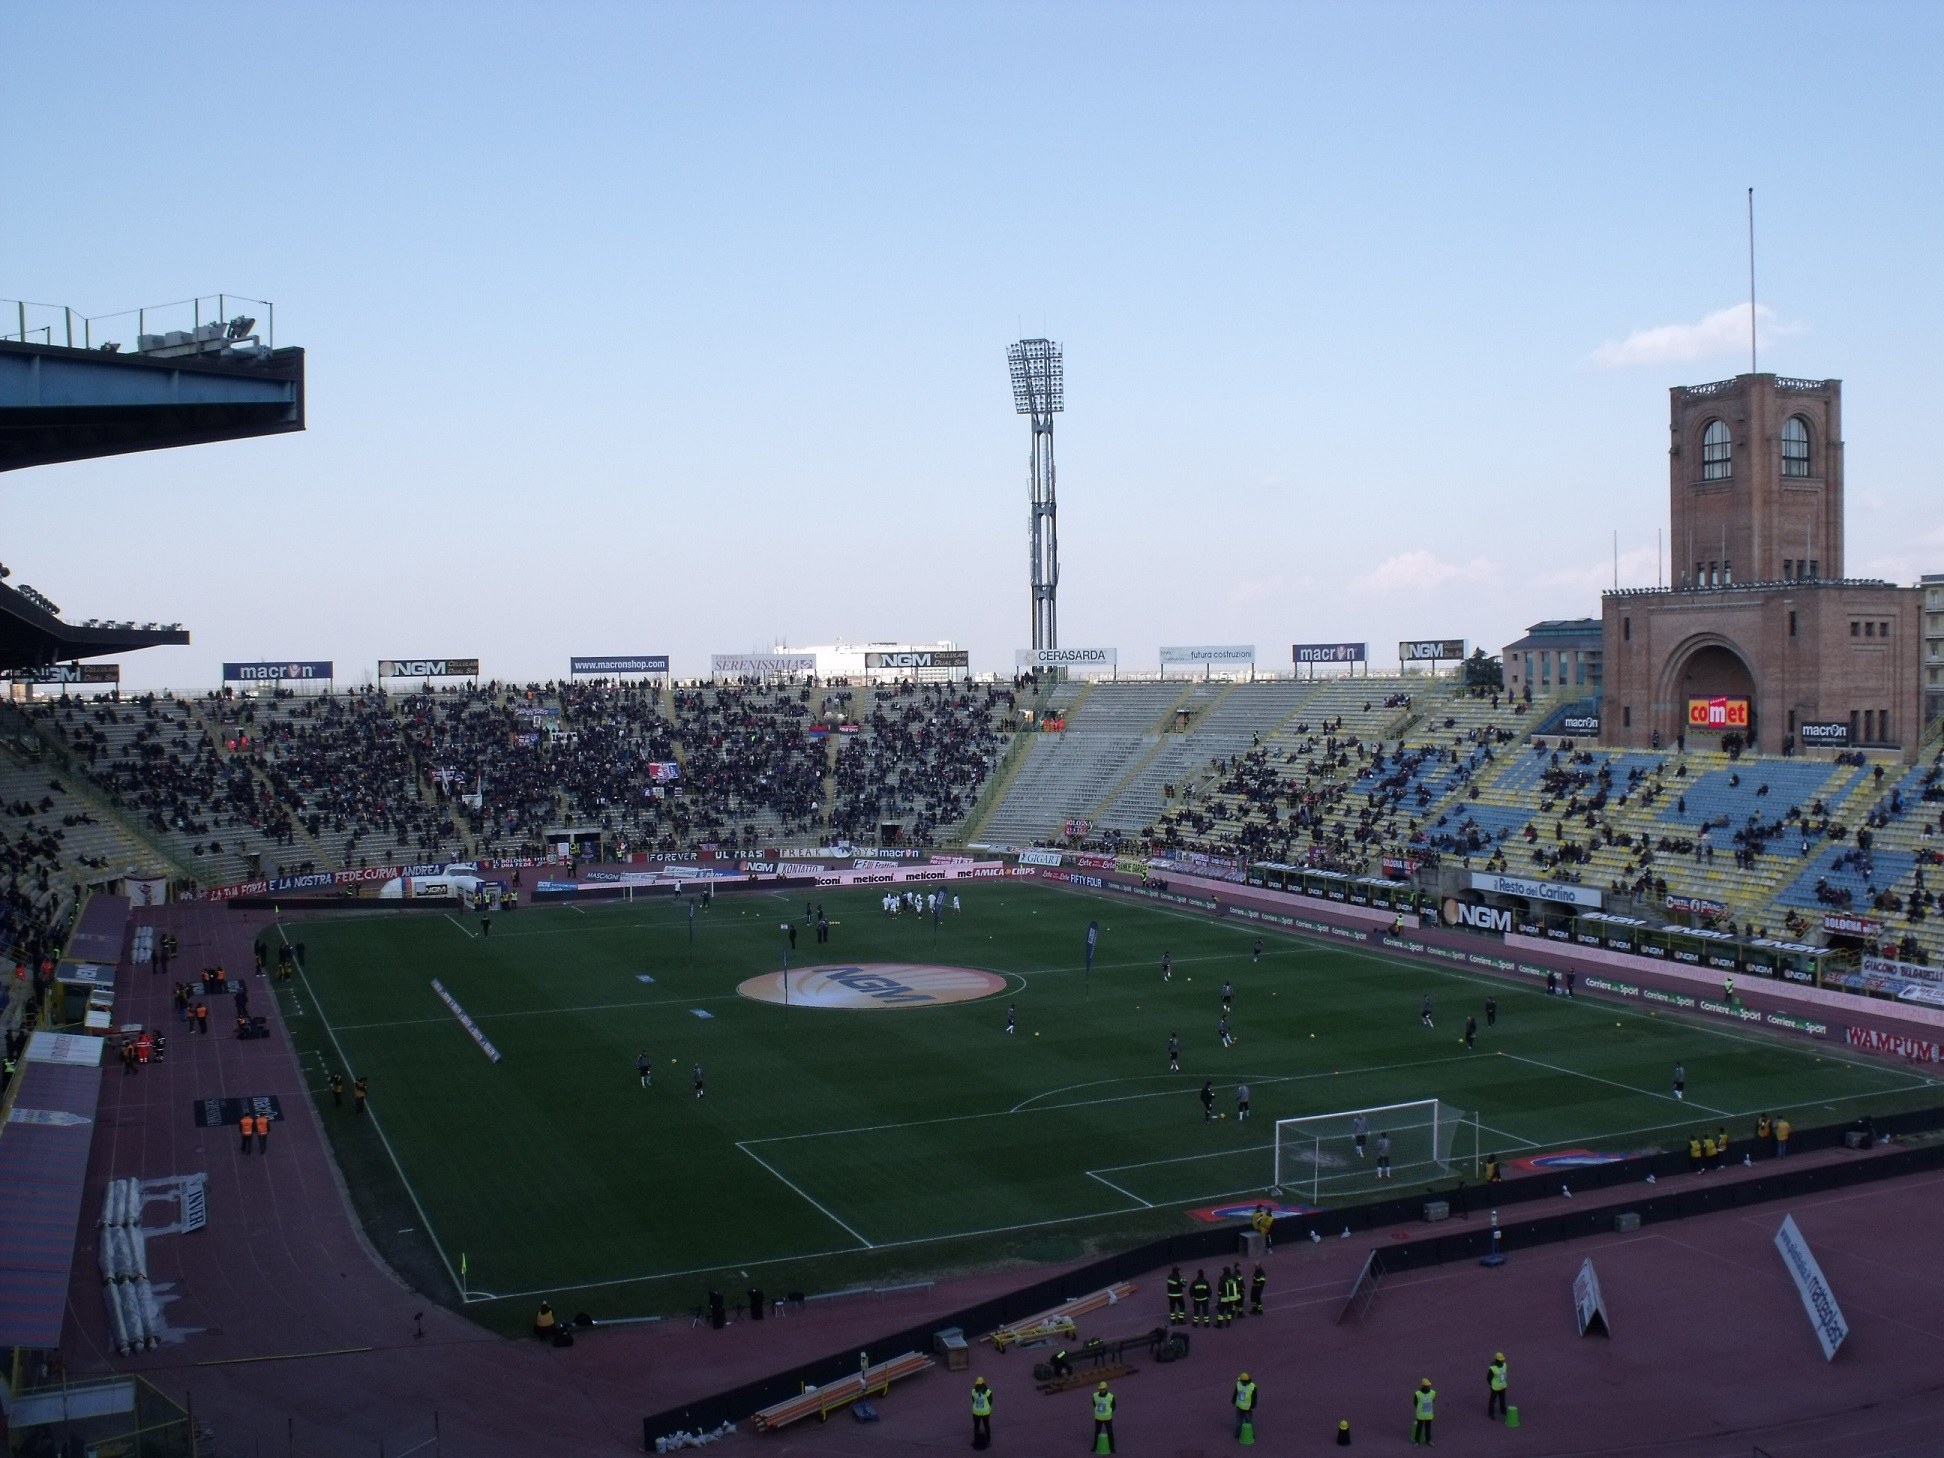 Otra vista del estadio (WIKIPEDIA).